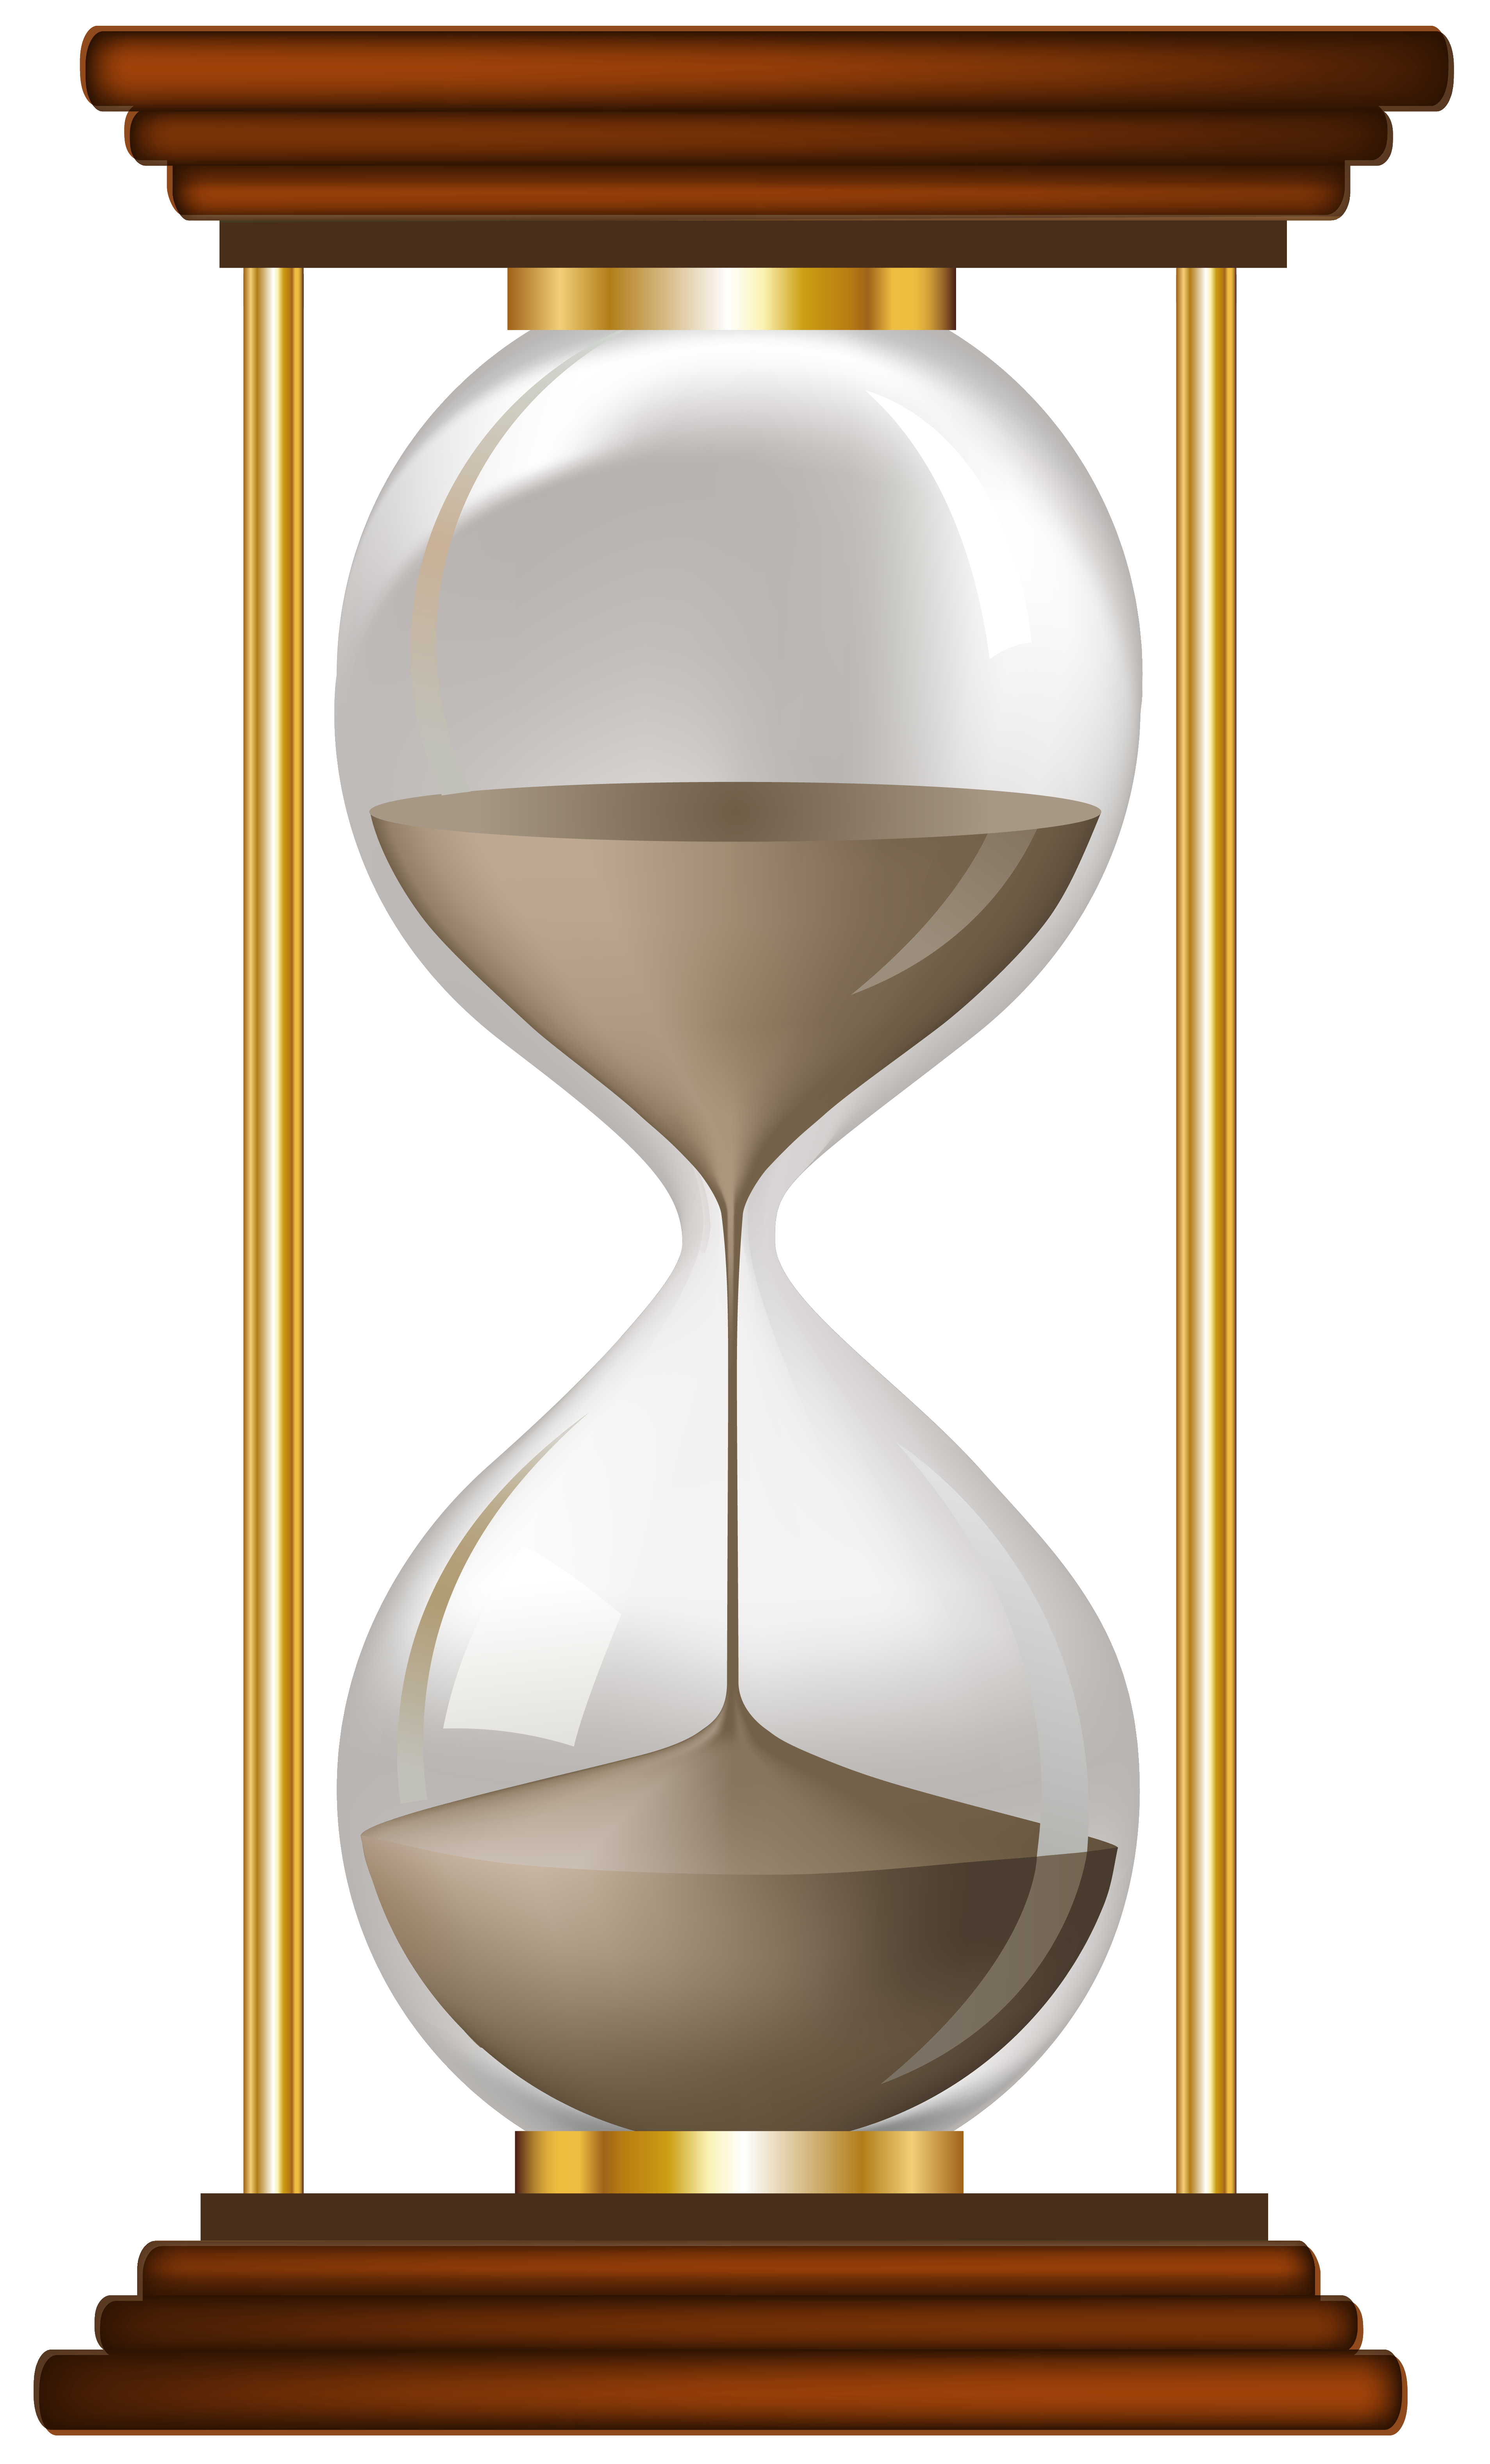 Sand clock png. Clip art pinterest and